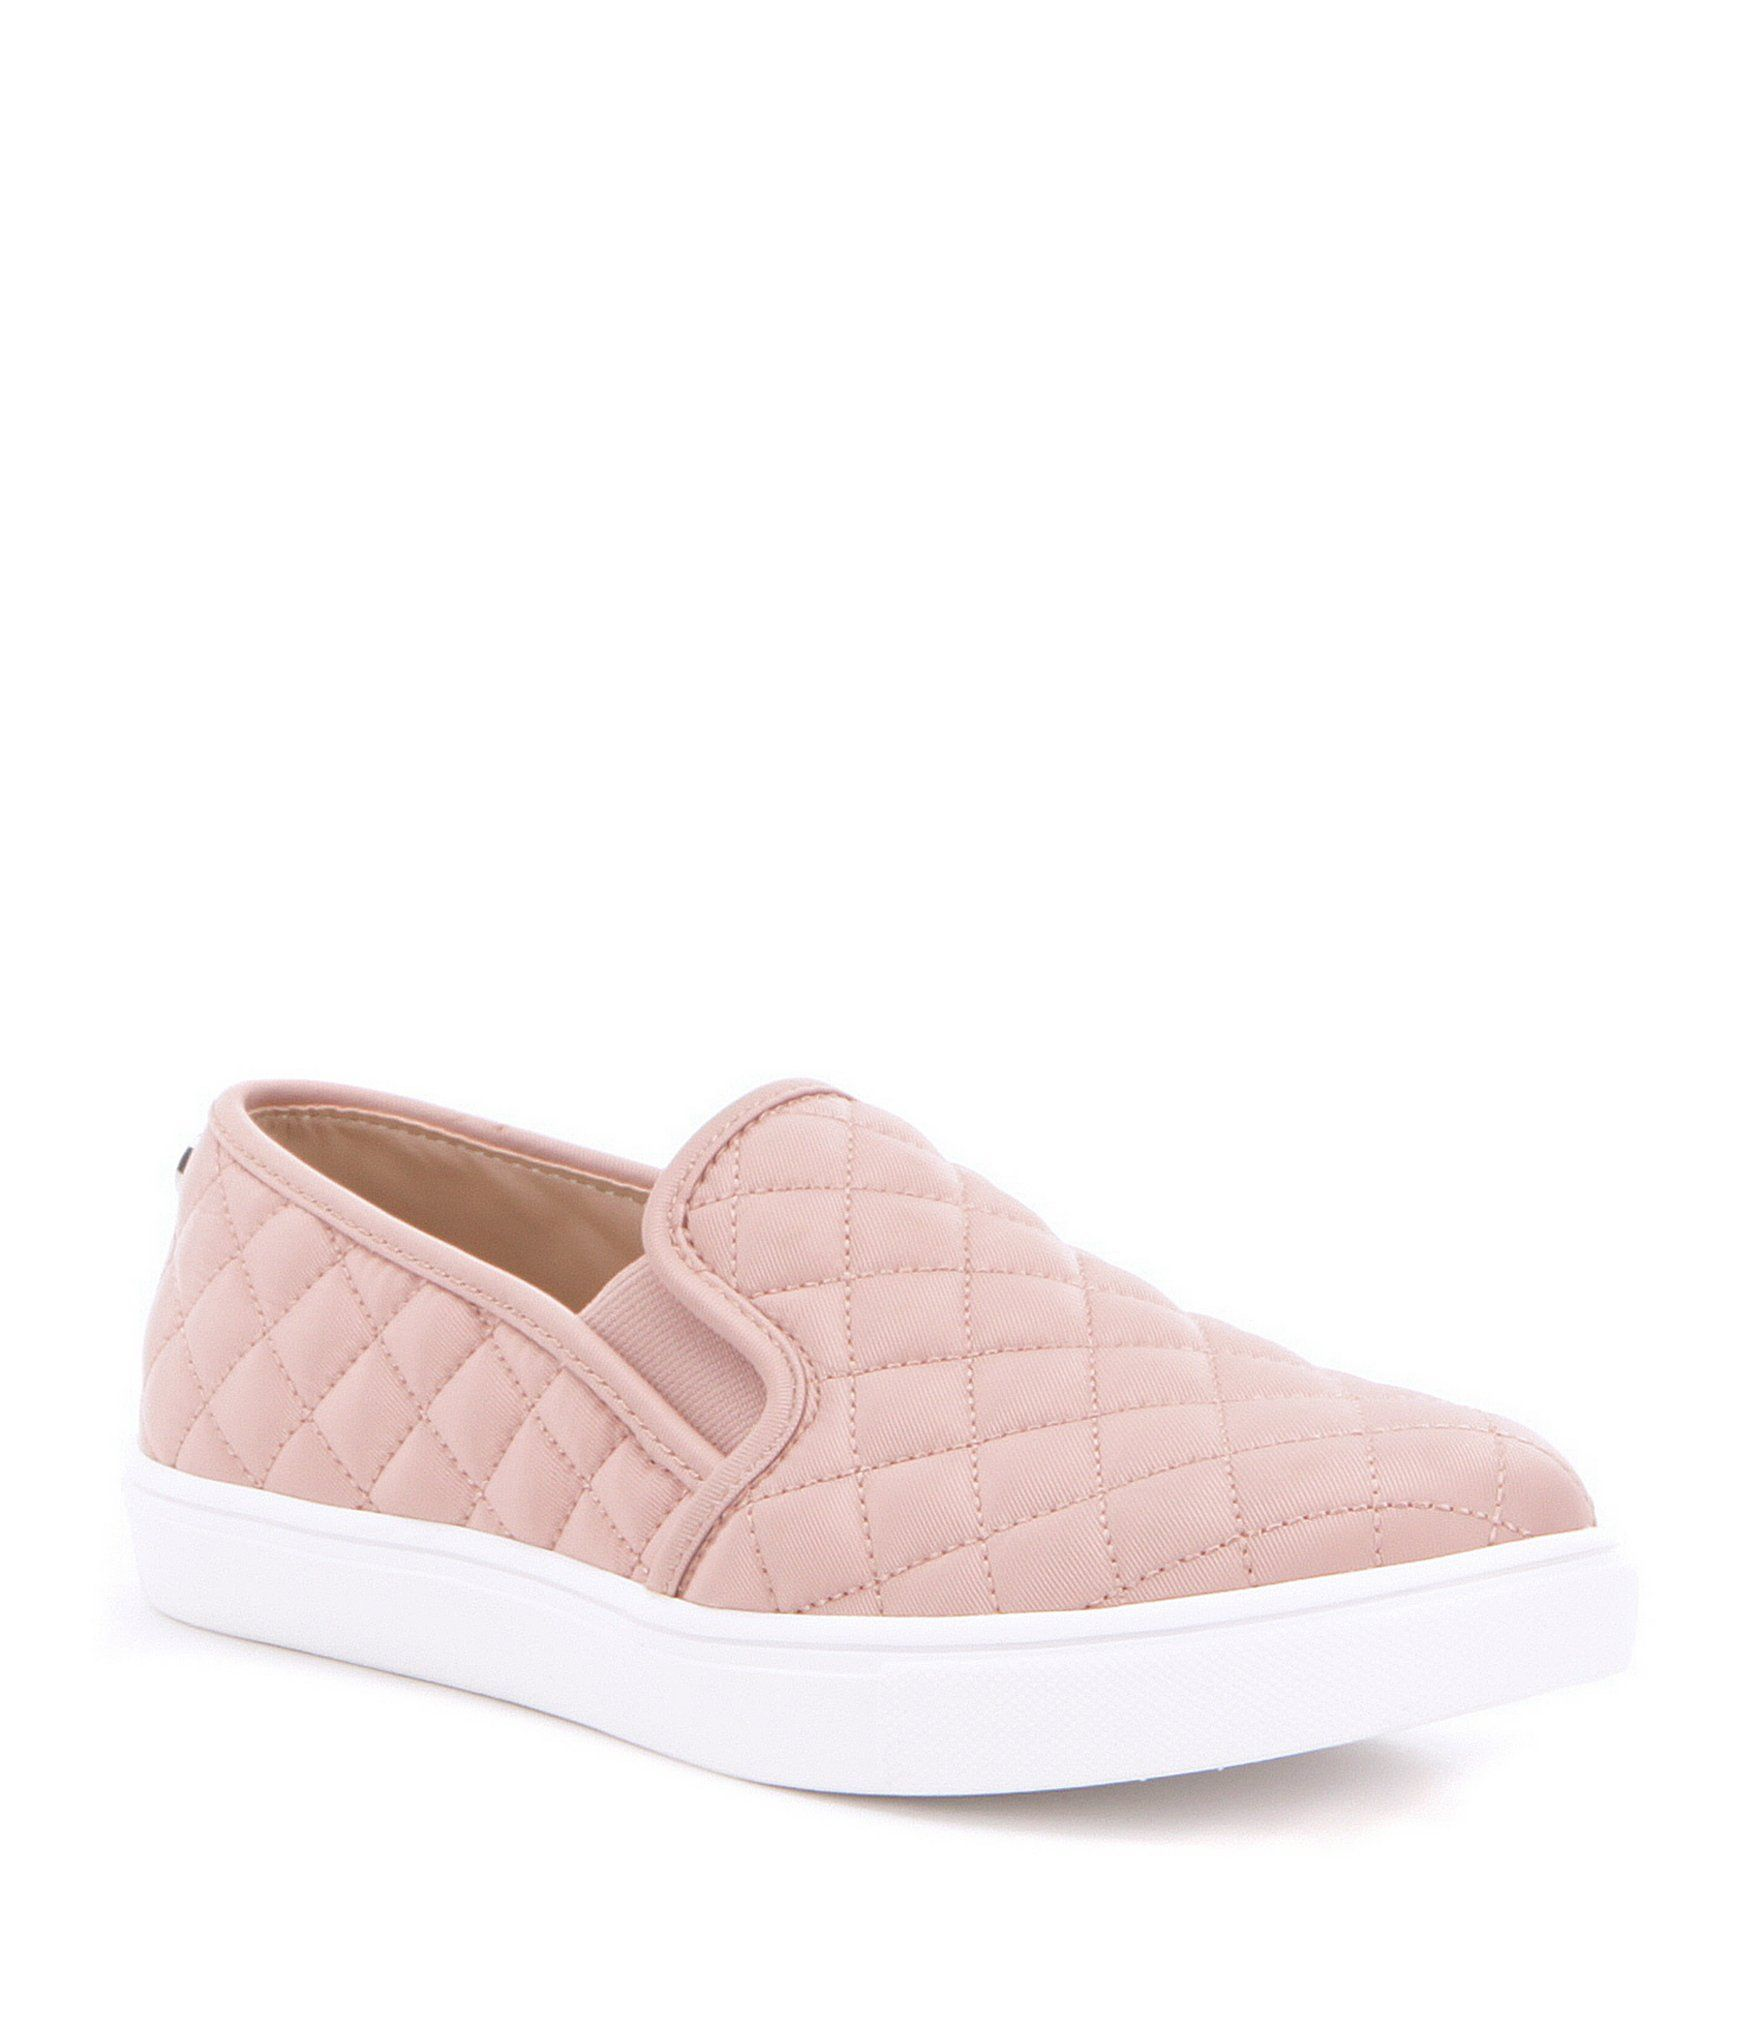 cb2fdae751d Steve Madden Ecntrcqt Quilted Nylon Sneakers at Dillards.com. Color black  size 10. The pink are cute too. I tried these on and know I need a ten they  run ...